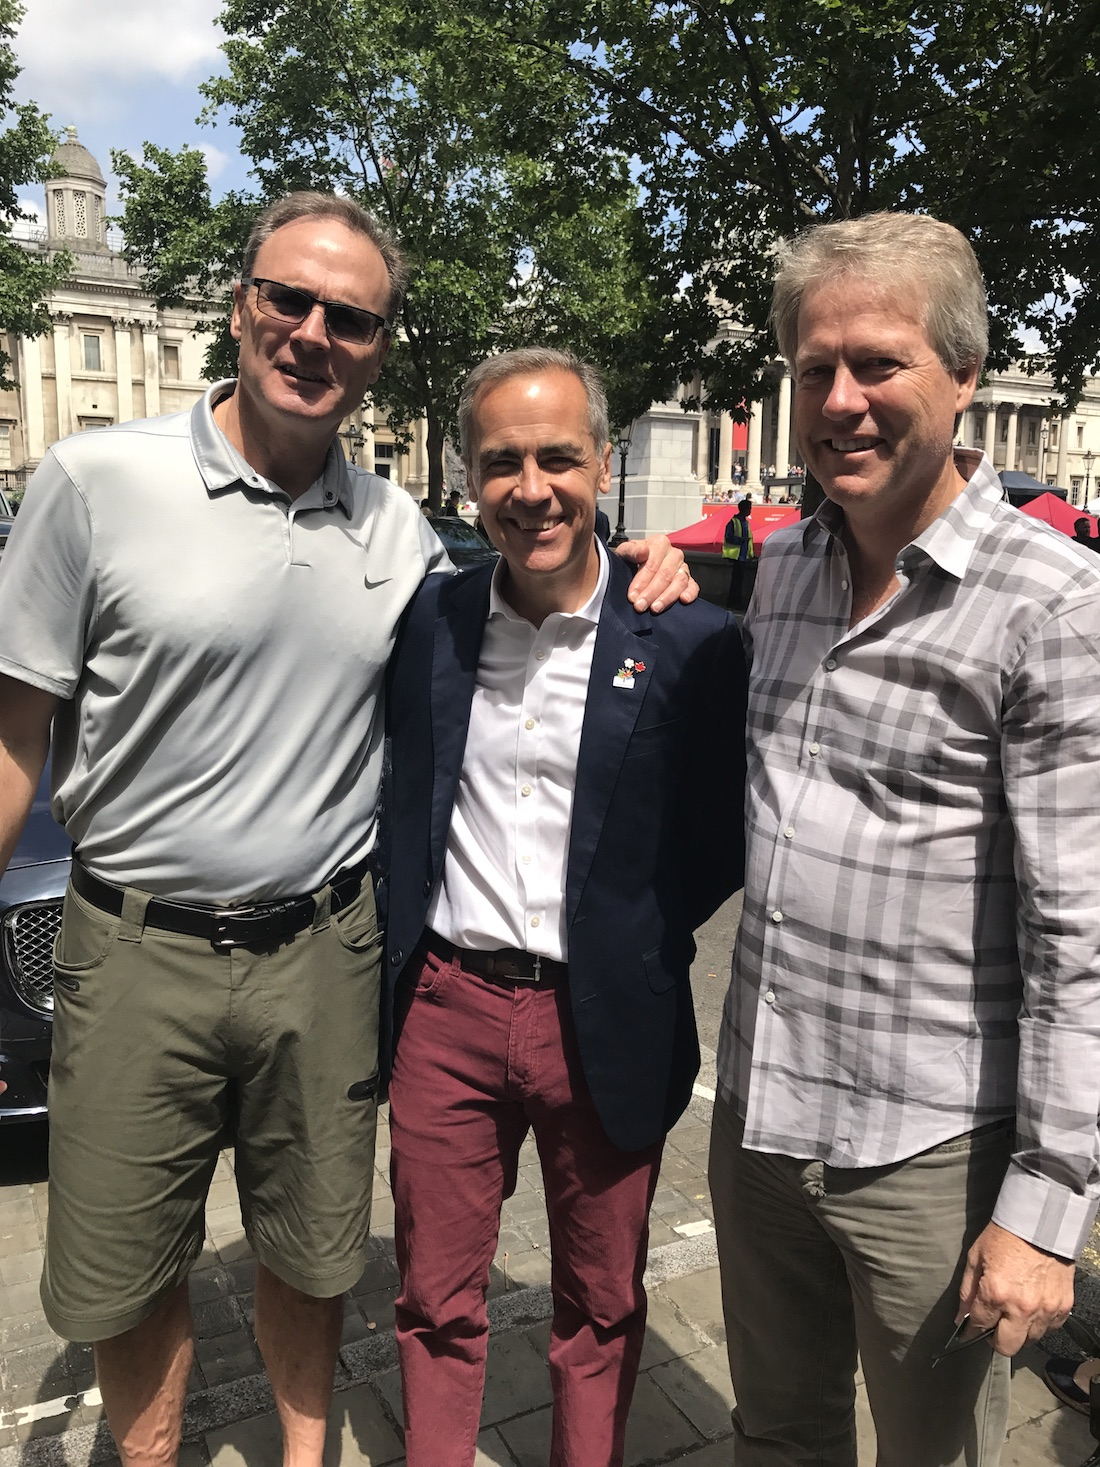 Ken Clausen, Mark Carney and Bruce MacLaren. Canada House. Canada's 150th